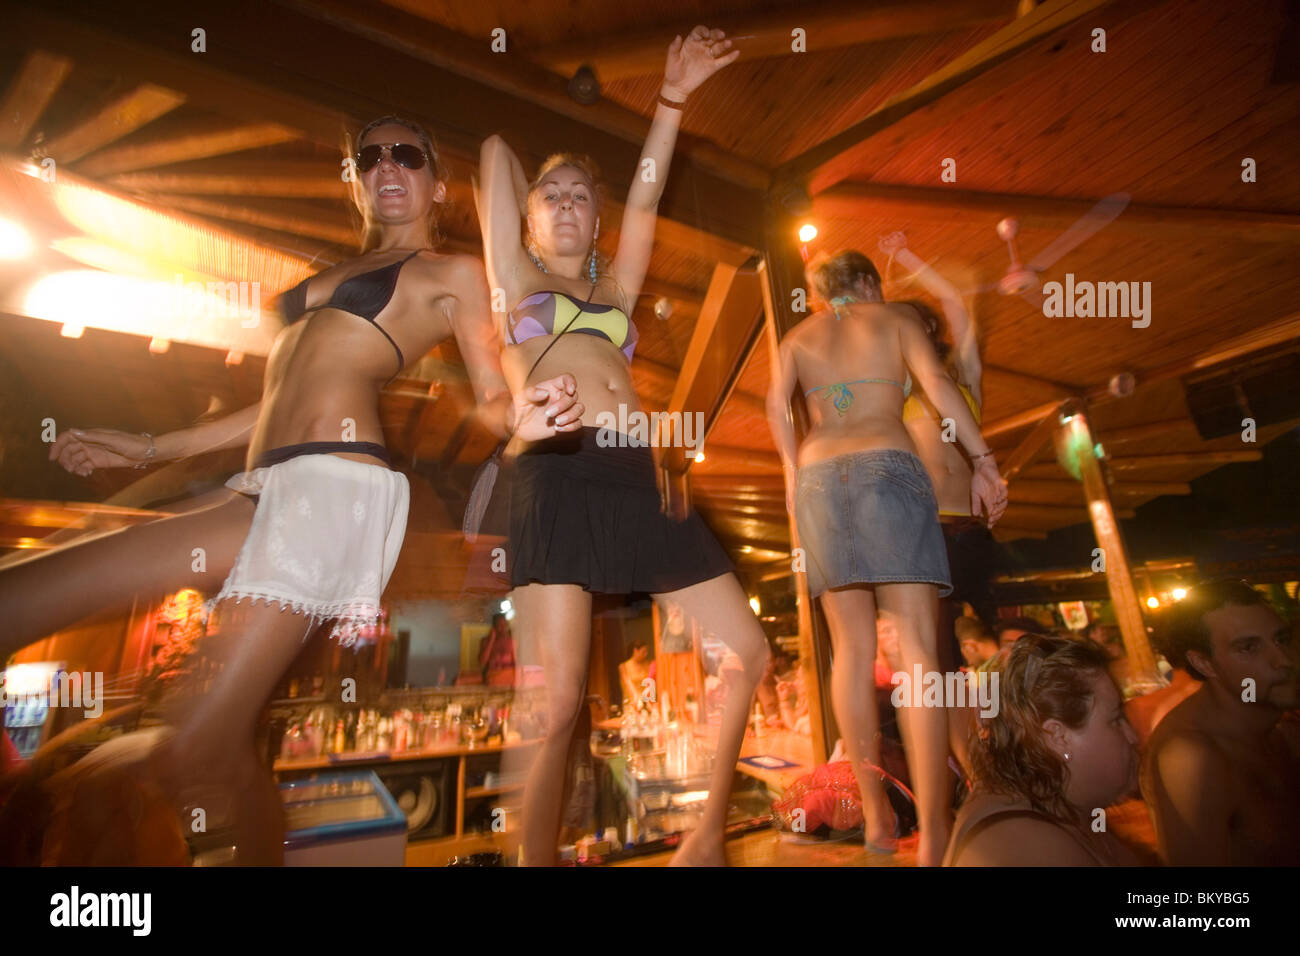 Young girls dancing a table during the full moon party, Tropicana Club, Paradise Beach, Mykonos, Greece - Stock Image